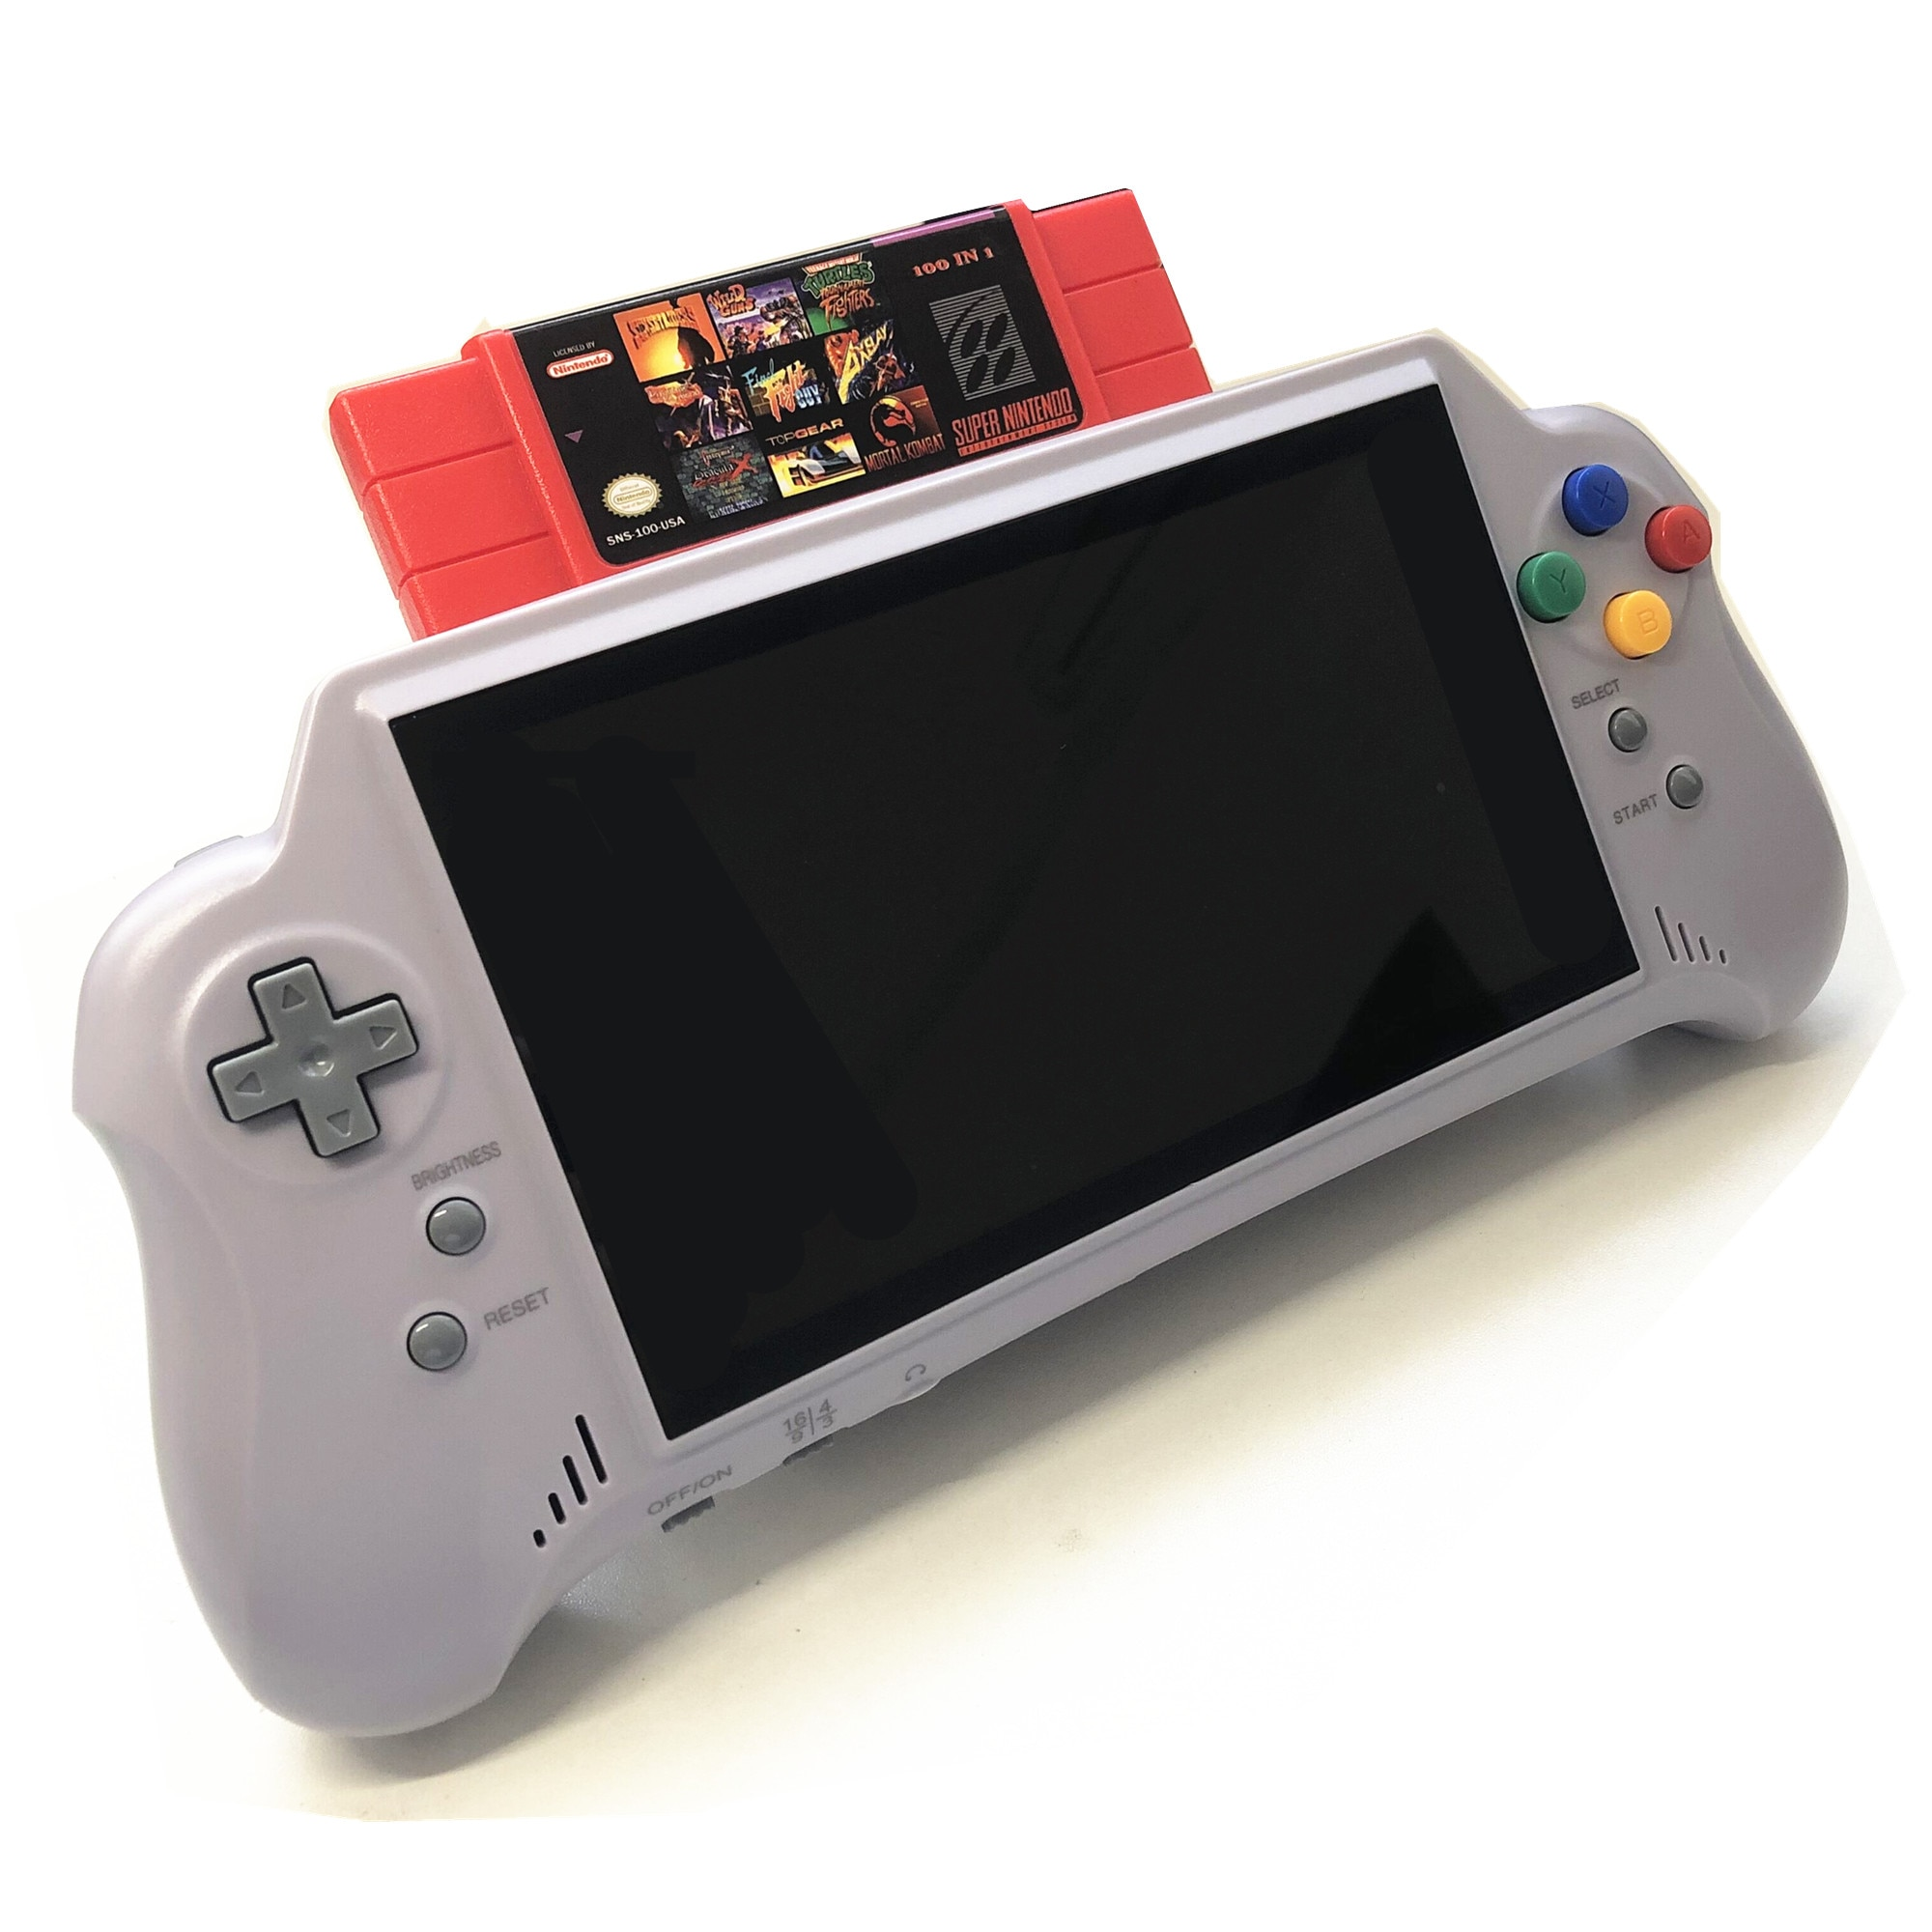 16bit 7inch big screem HD ULTRA SNES POCKET RETROAD 5PLUS Video Game Console handheld game player  2.4G Wireless controllers